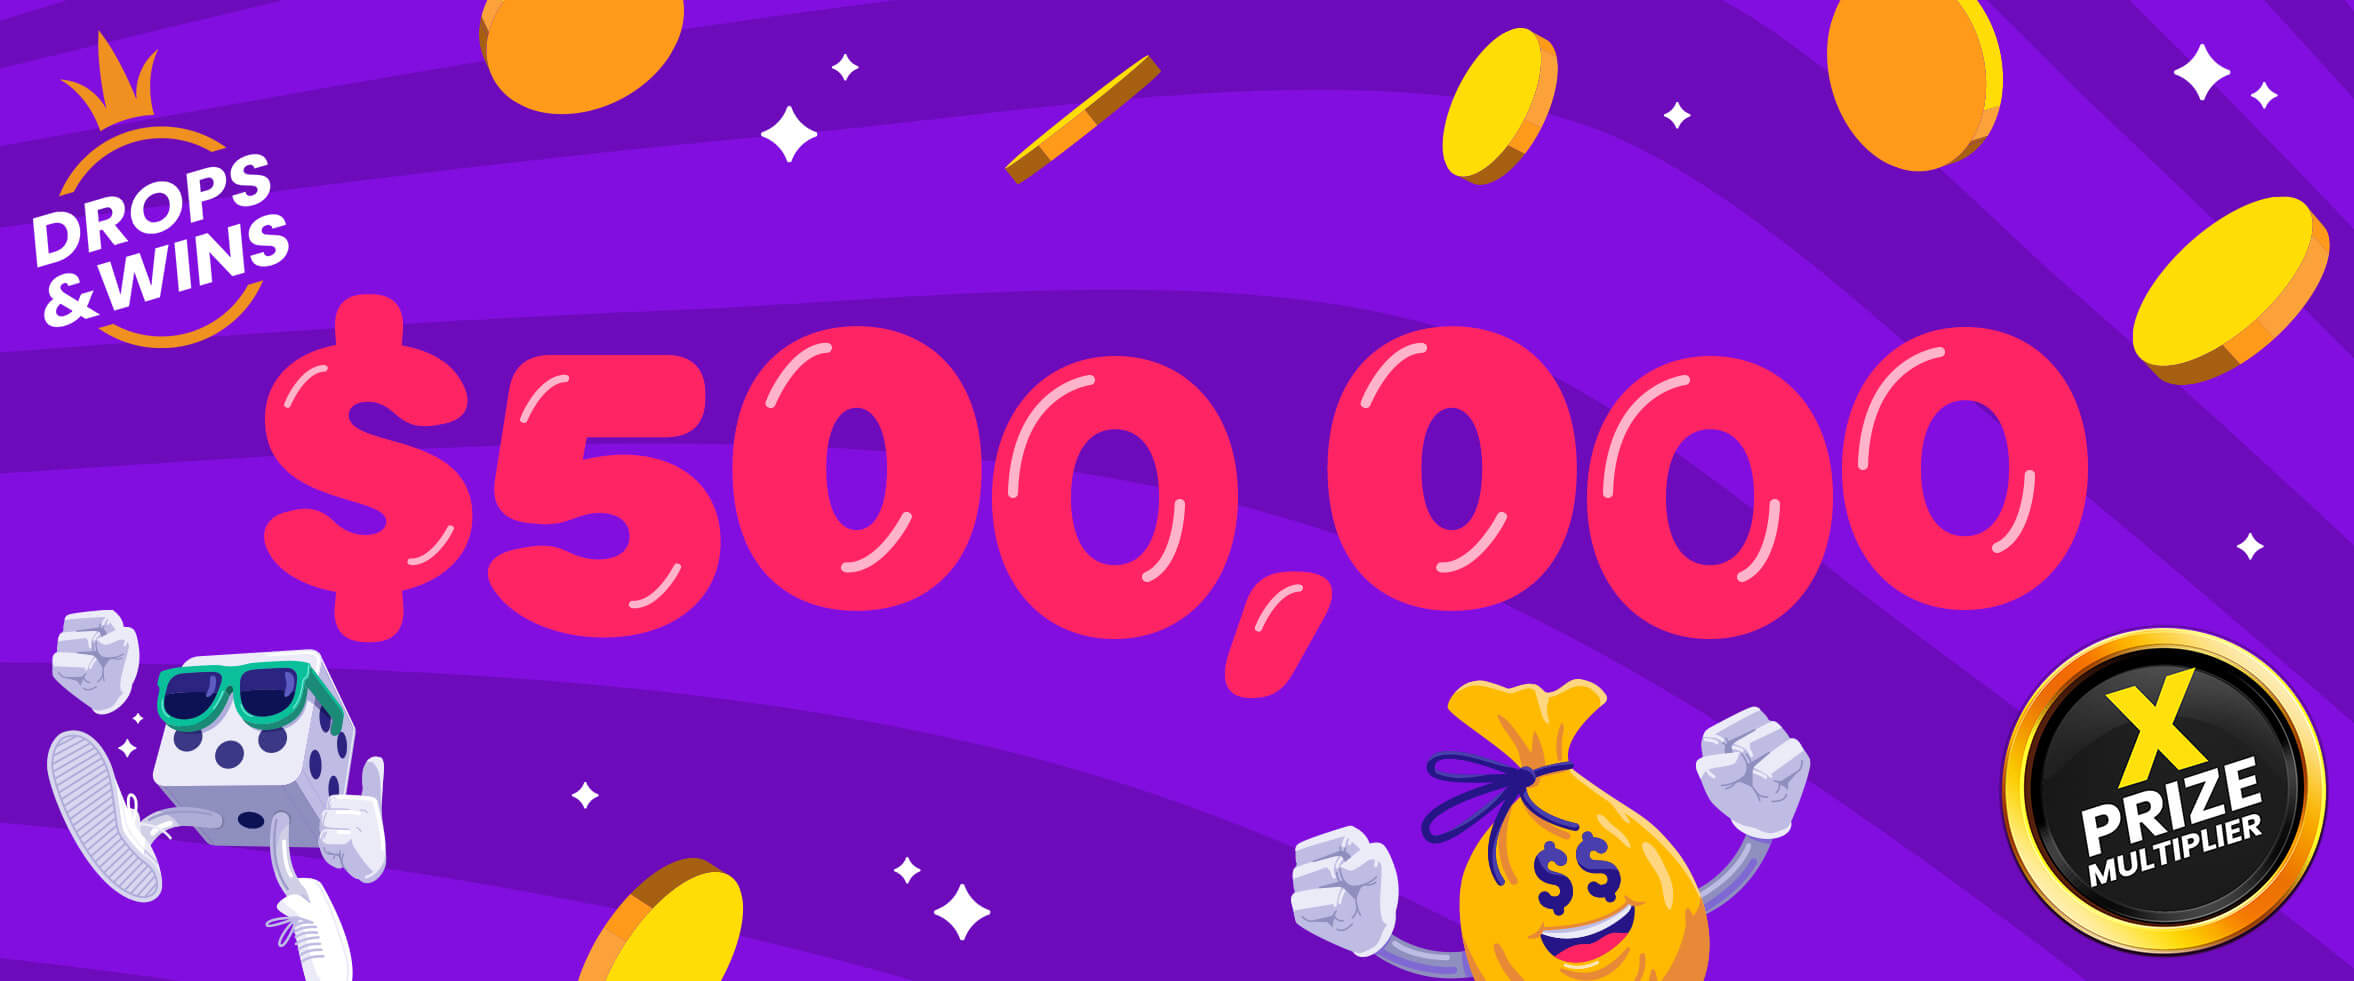 Drops & Wins Prizes Boosted to $7,000,000!